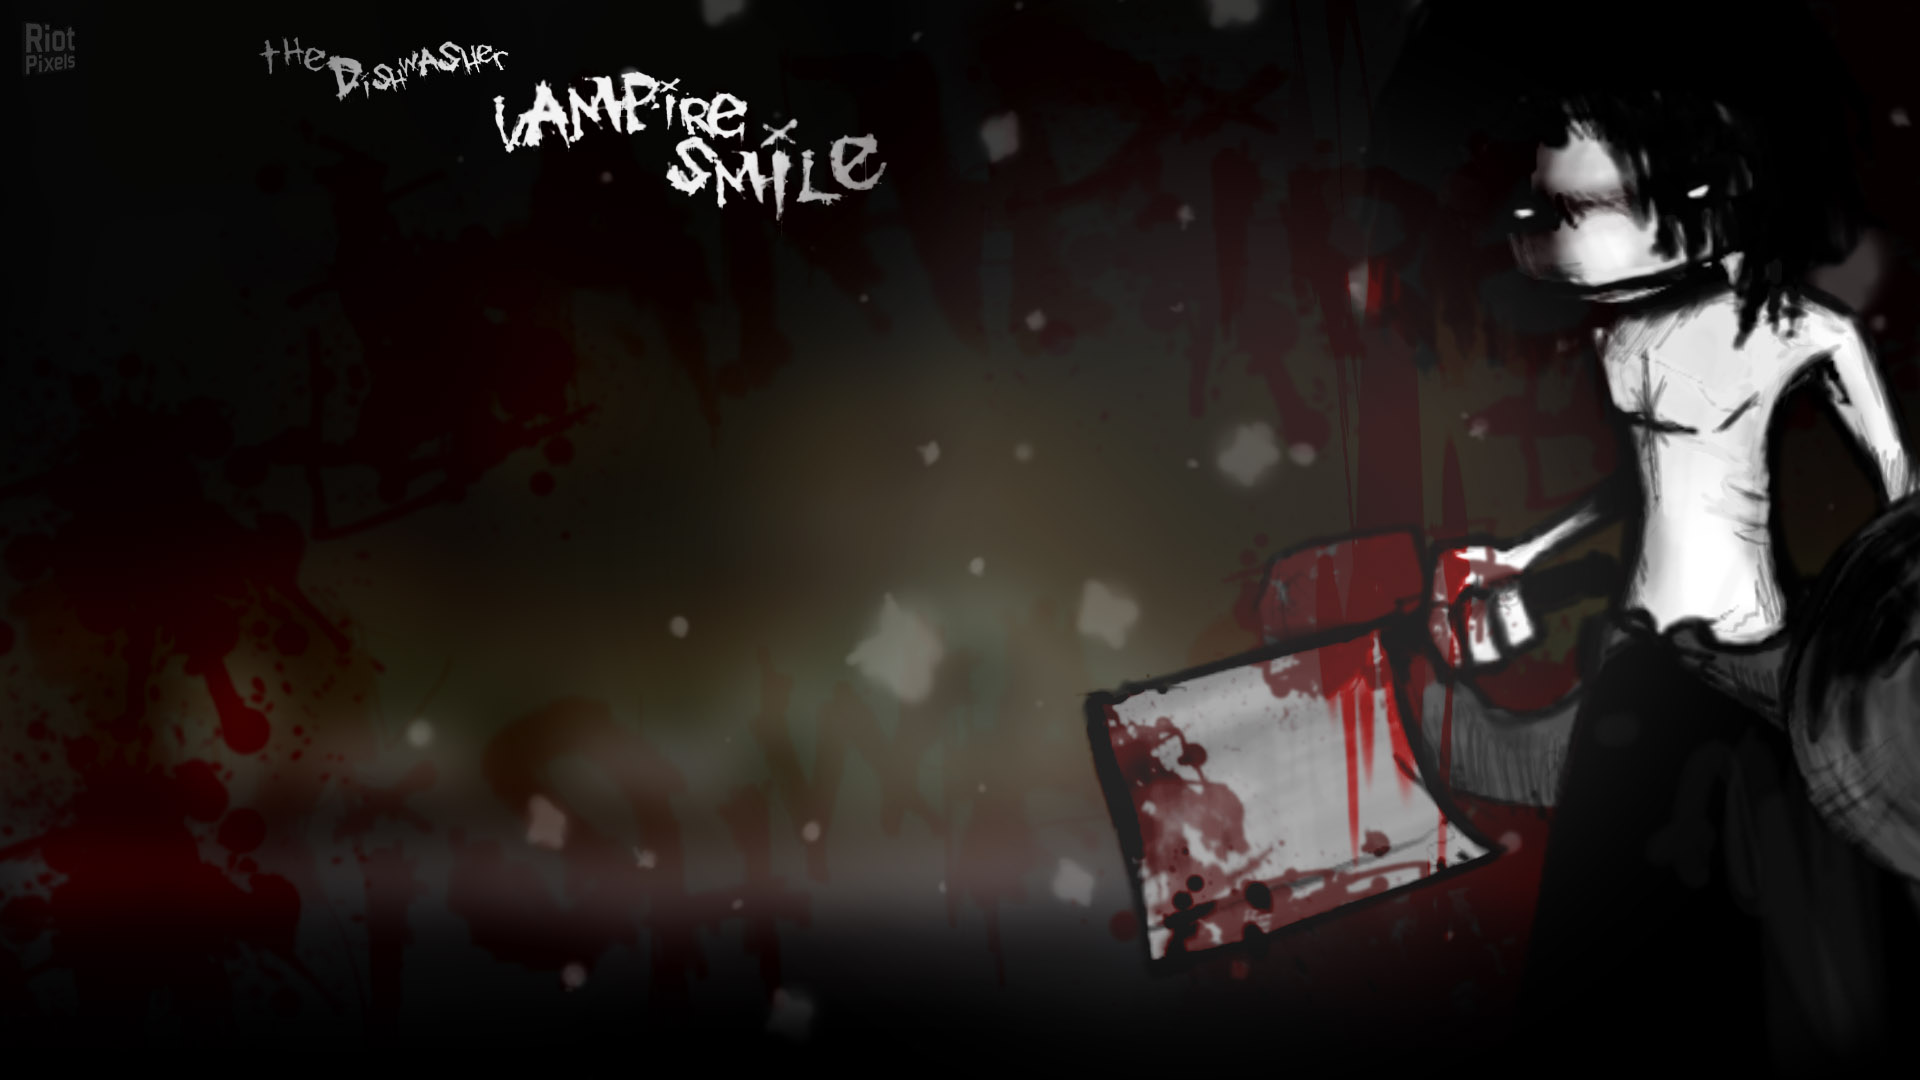 Dishwasher Vampire Smile The Game Wallpapers At Riot Pixels